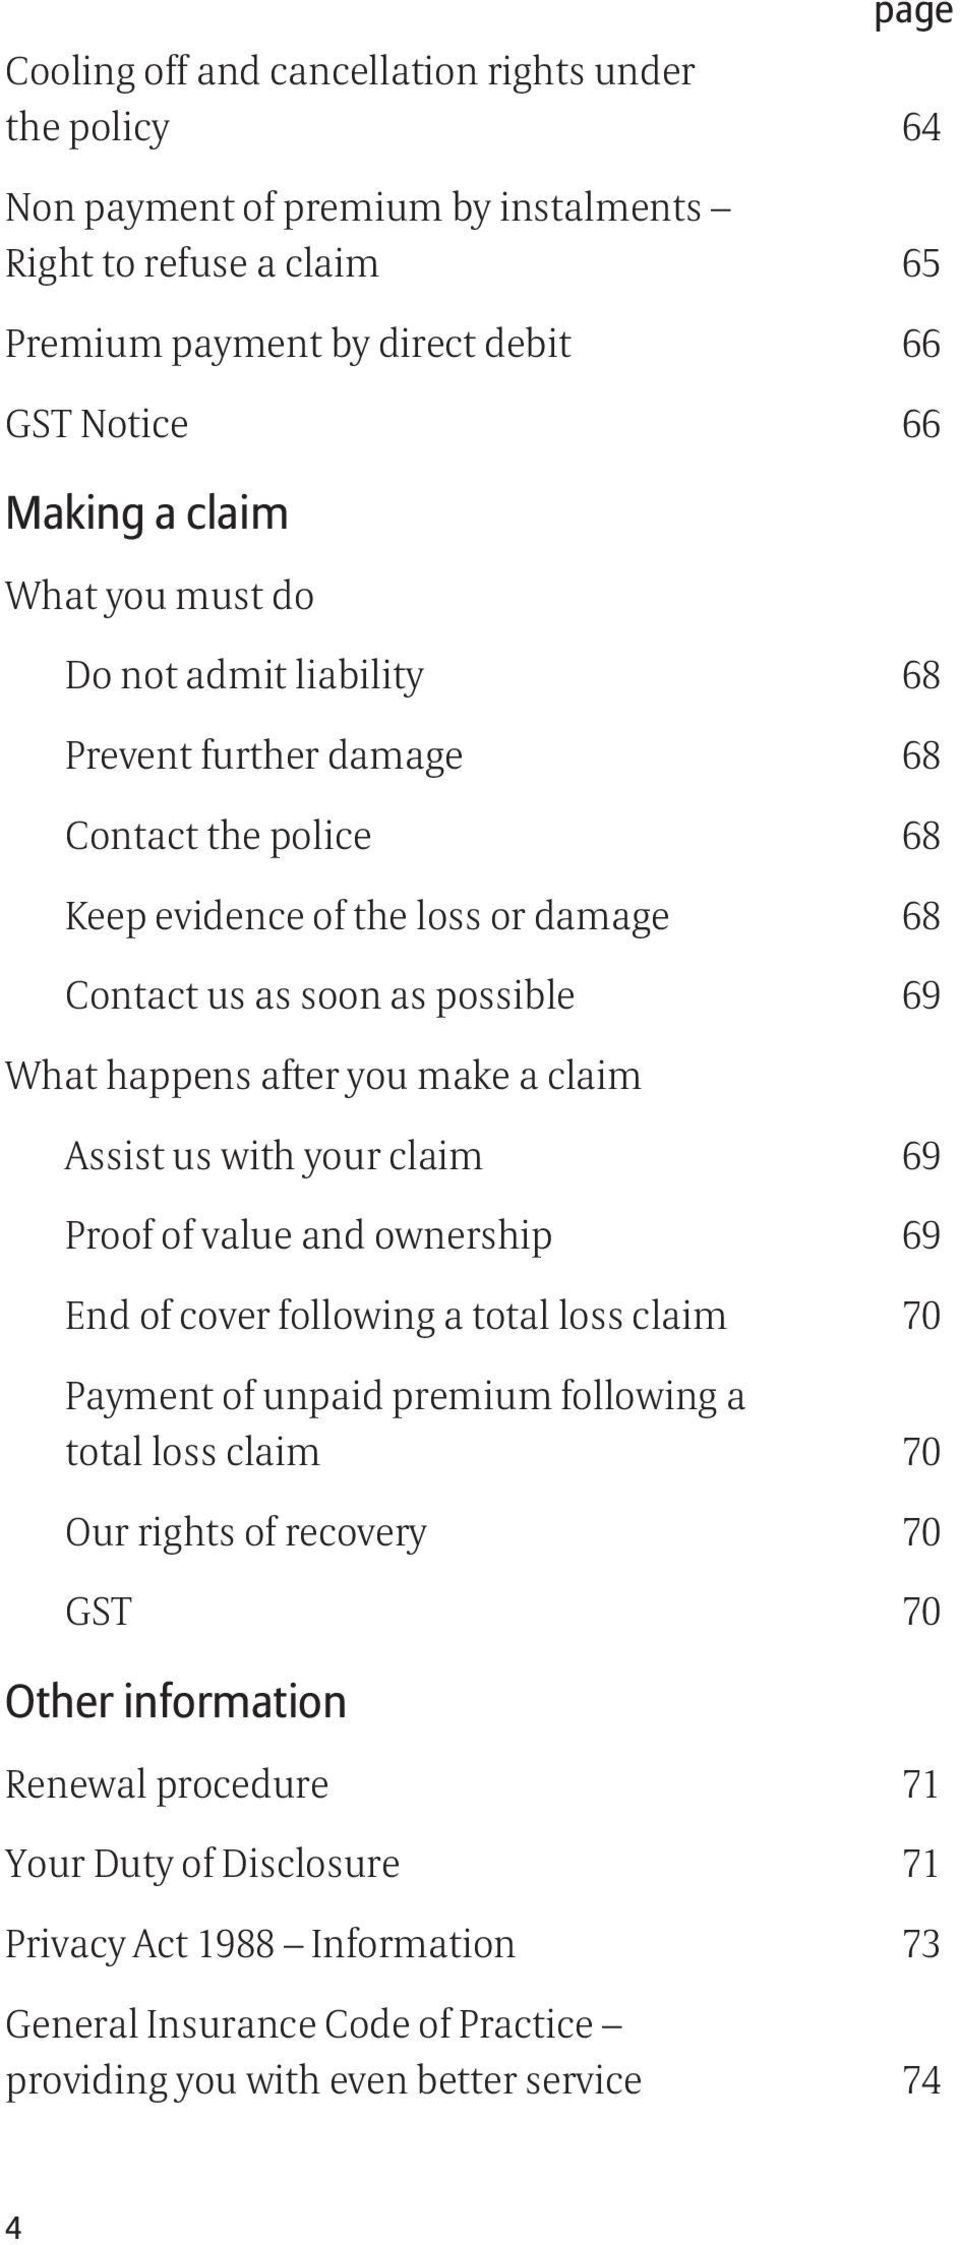 make a claim Assist us with your claim 69 Proof of value and ownership 69 End of cover following a total loss claim 70 Payment of unpaid premium following a total loss claim 70 Our rights of